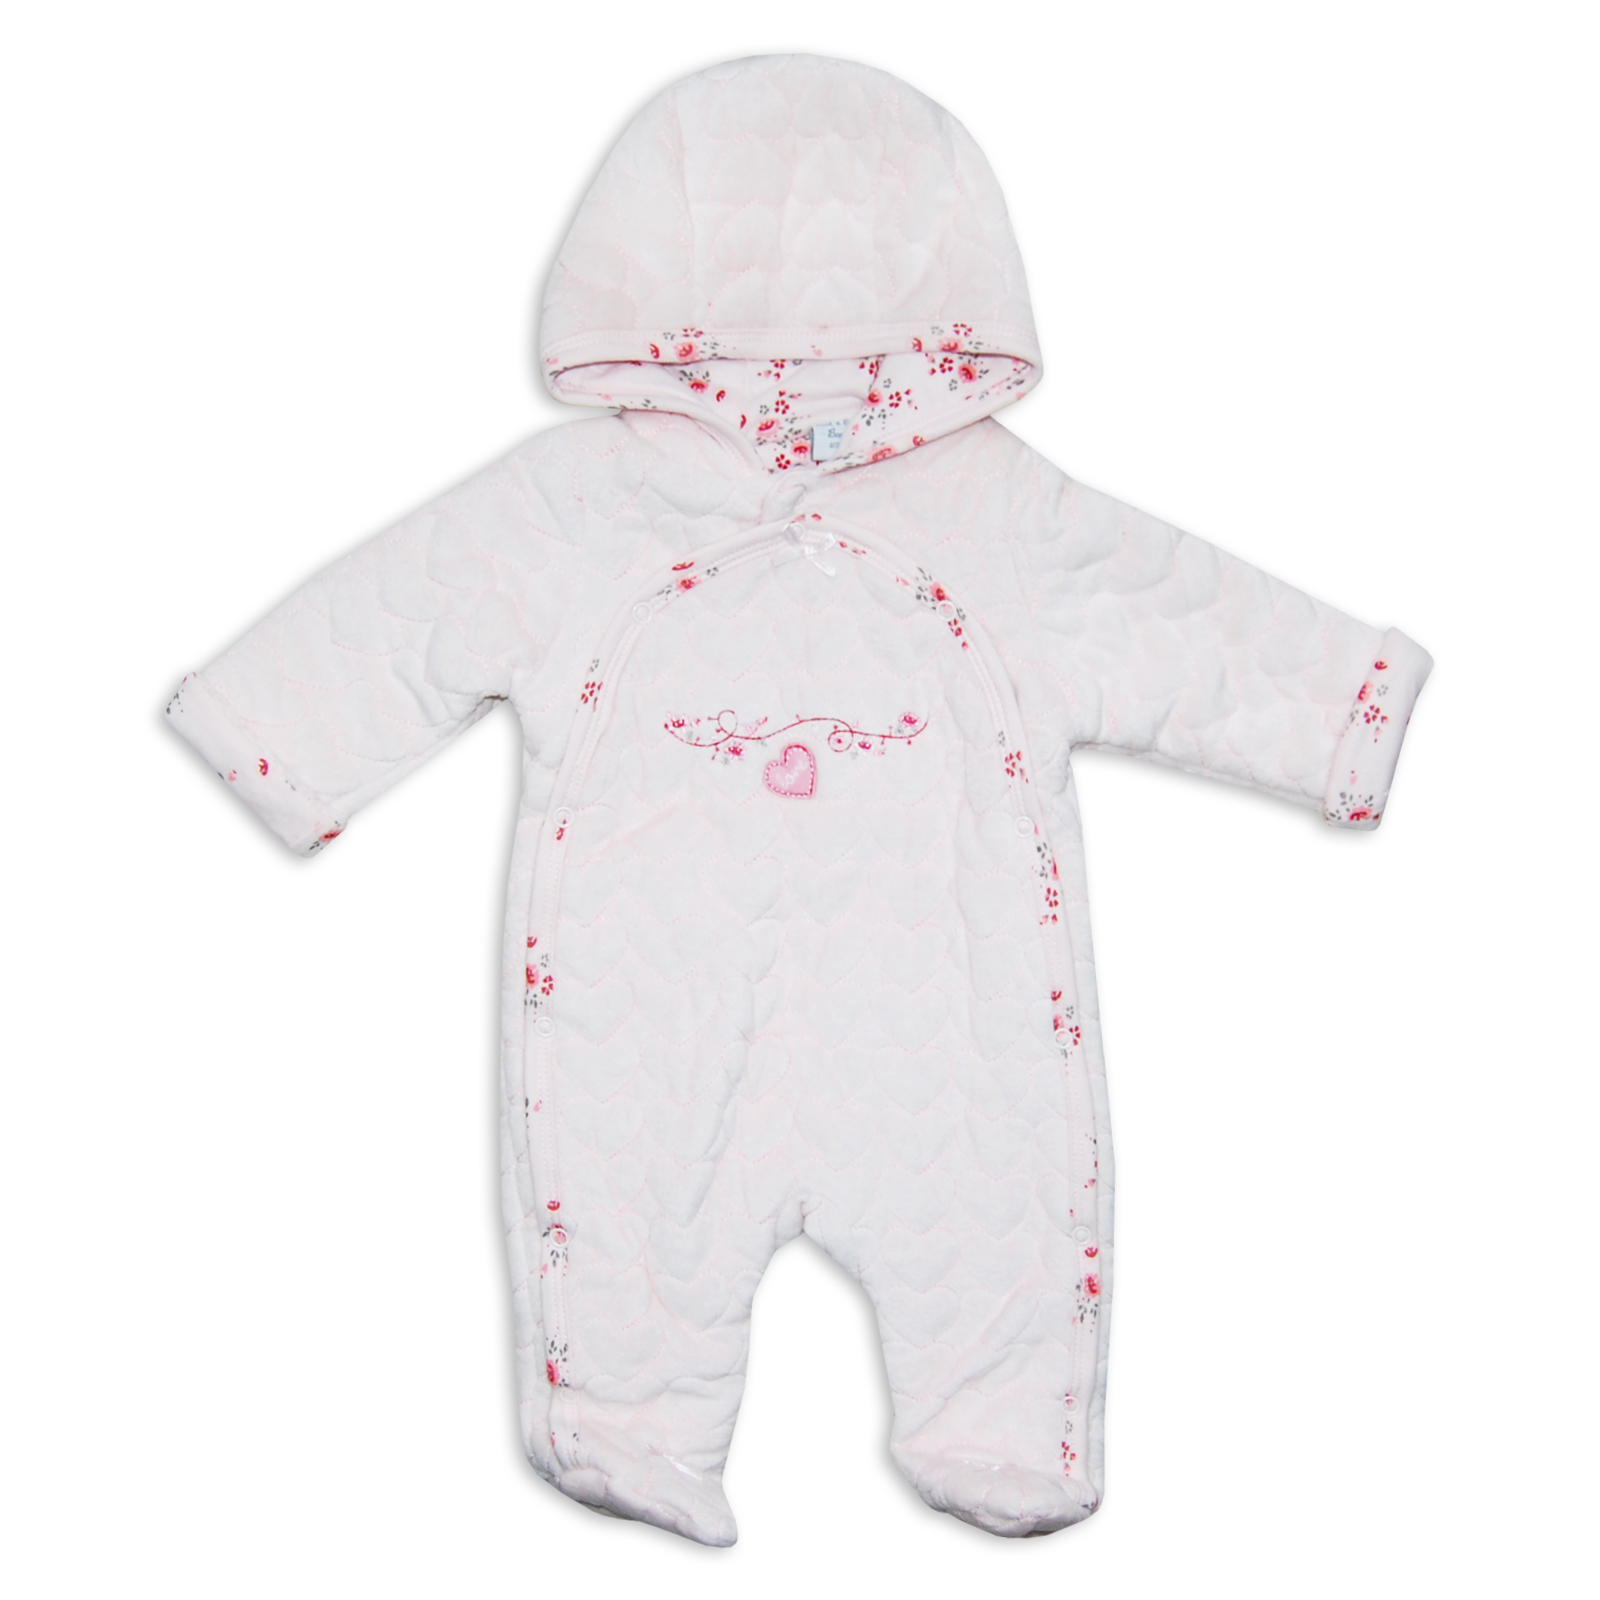 Polyester with % Cotton lining Baby snowsuit with mittens and a hood for girl. Microfiber padded snow suit with single front zip fastenin will be one of your favorite winter baby clothes.